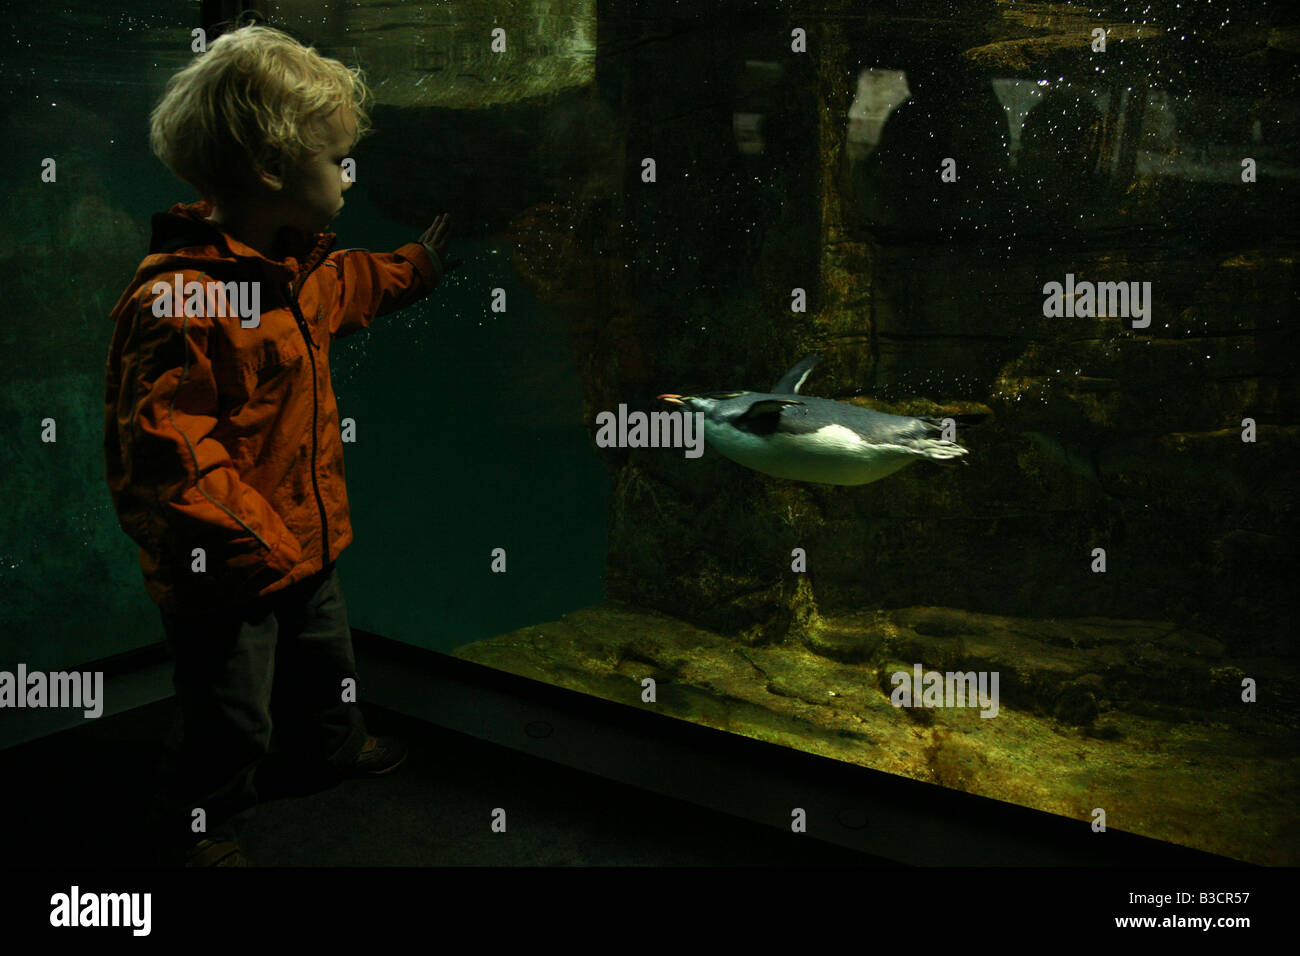 Young boy examining Rockhopper Penguins (Eudyptes chrysocome) at Schonbrunn Zoo in Vienna, Austria Stock Photo